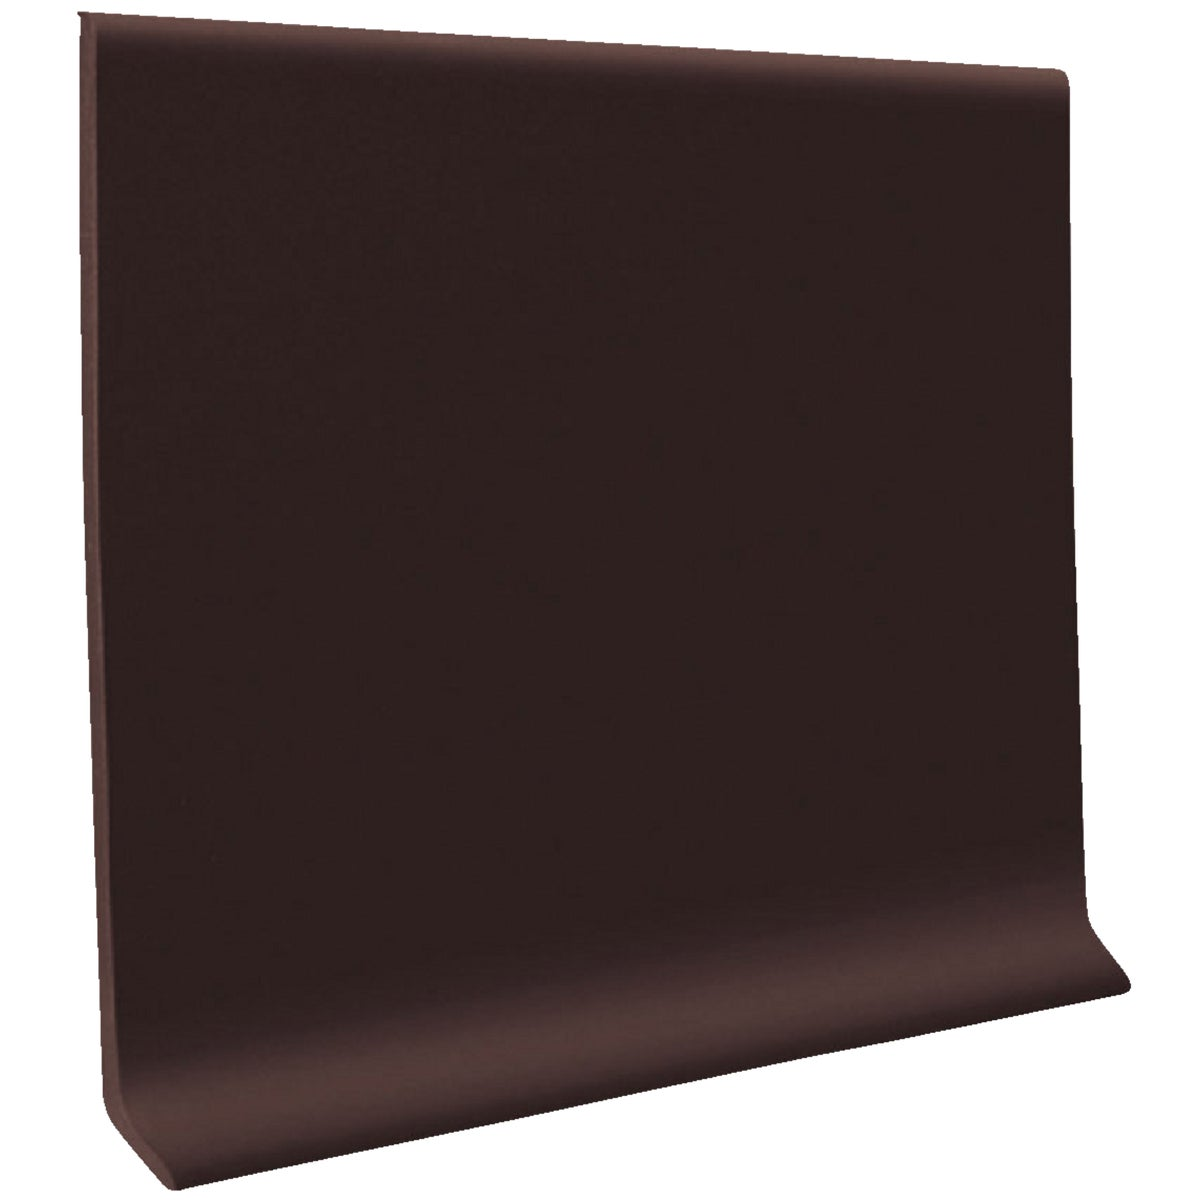 "4""X4' BROWN WALL BASE - H1640C52P110 by Roppe Corporation"